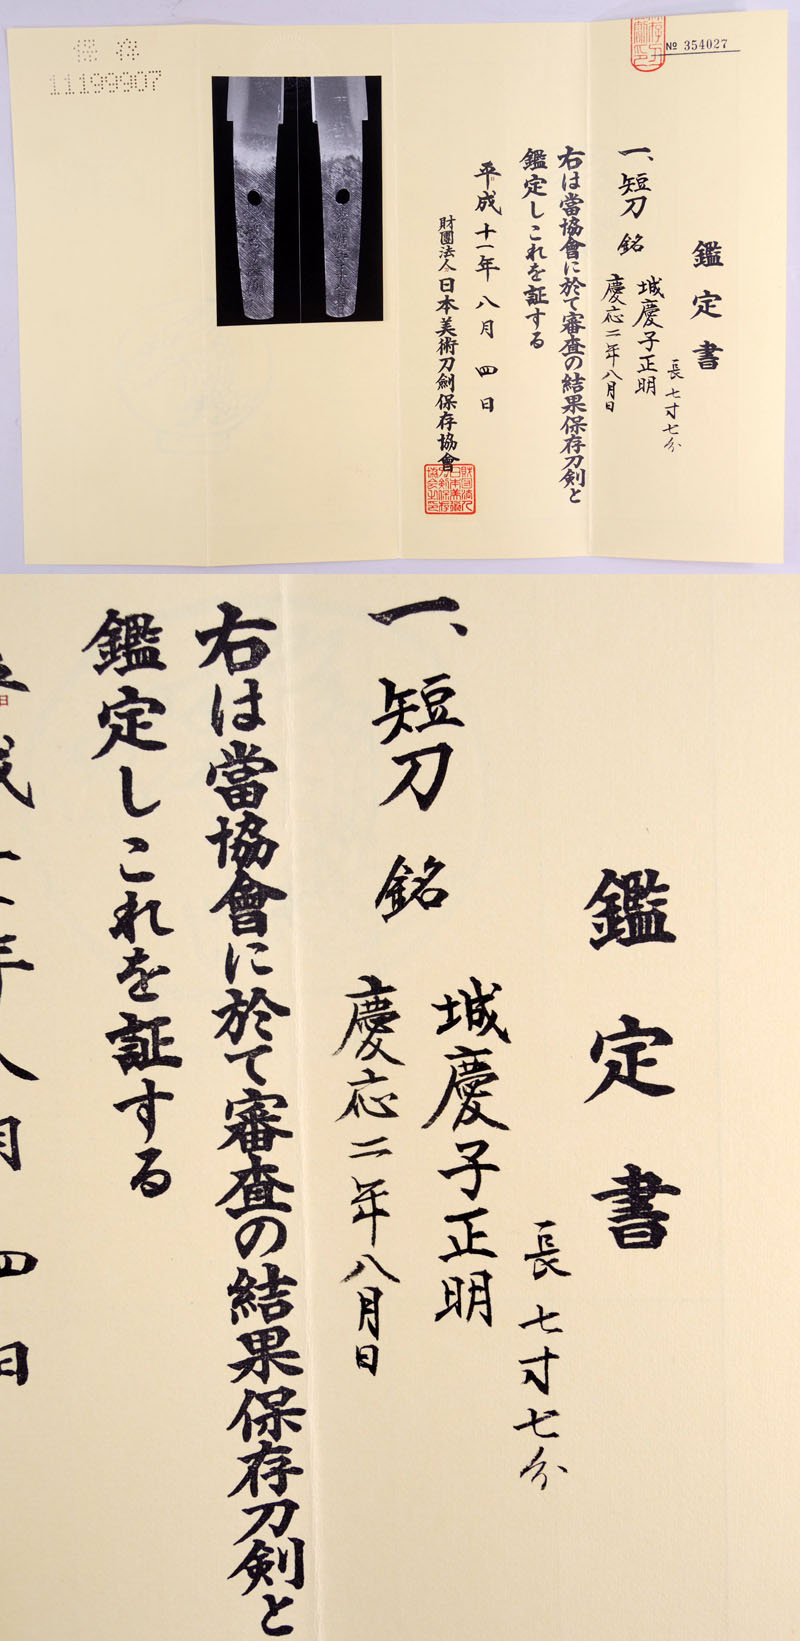 城慶子正明 Picture of Certificate